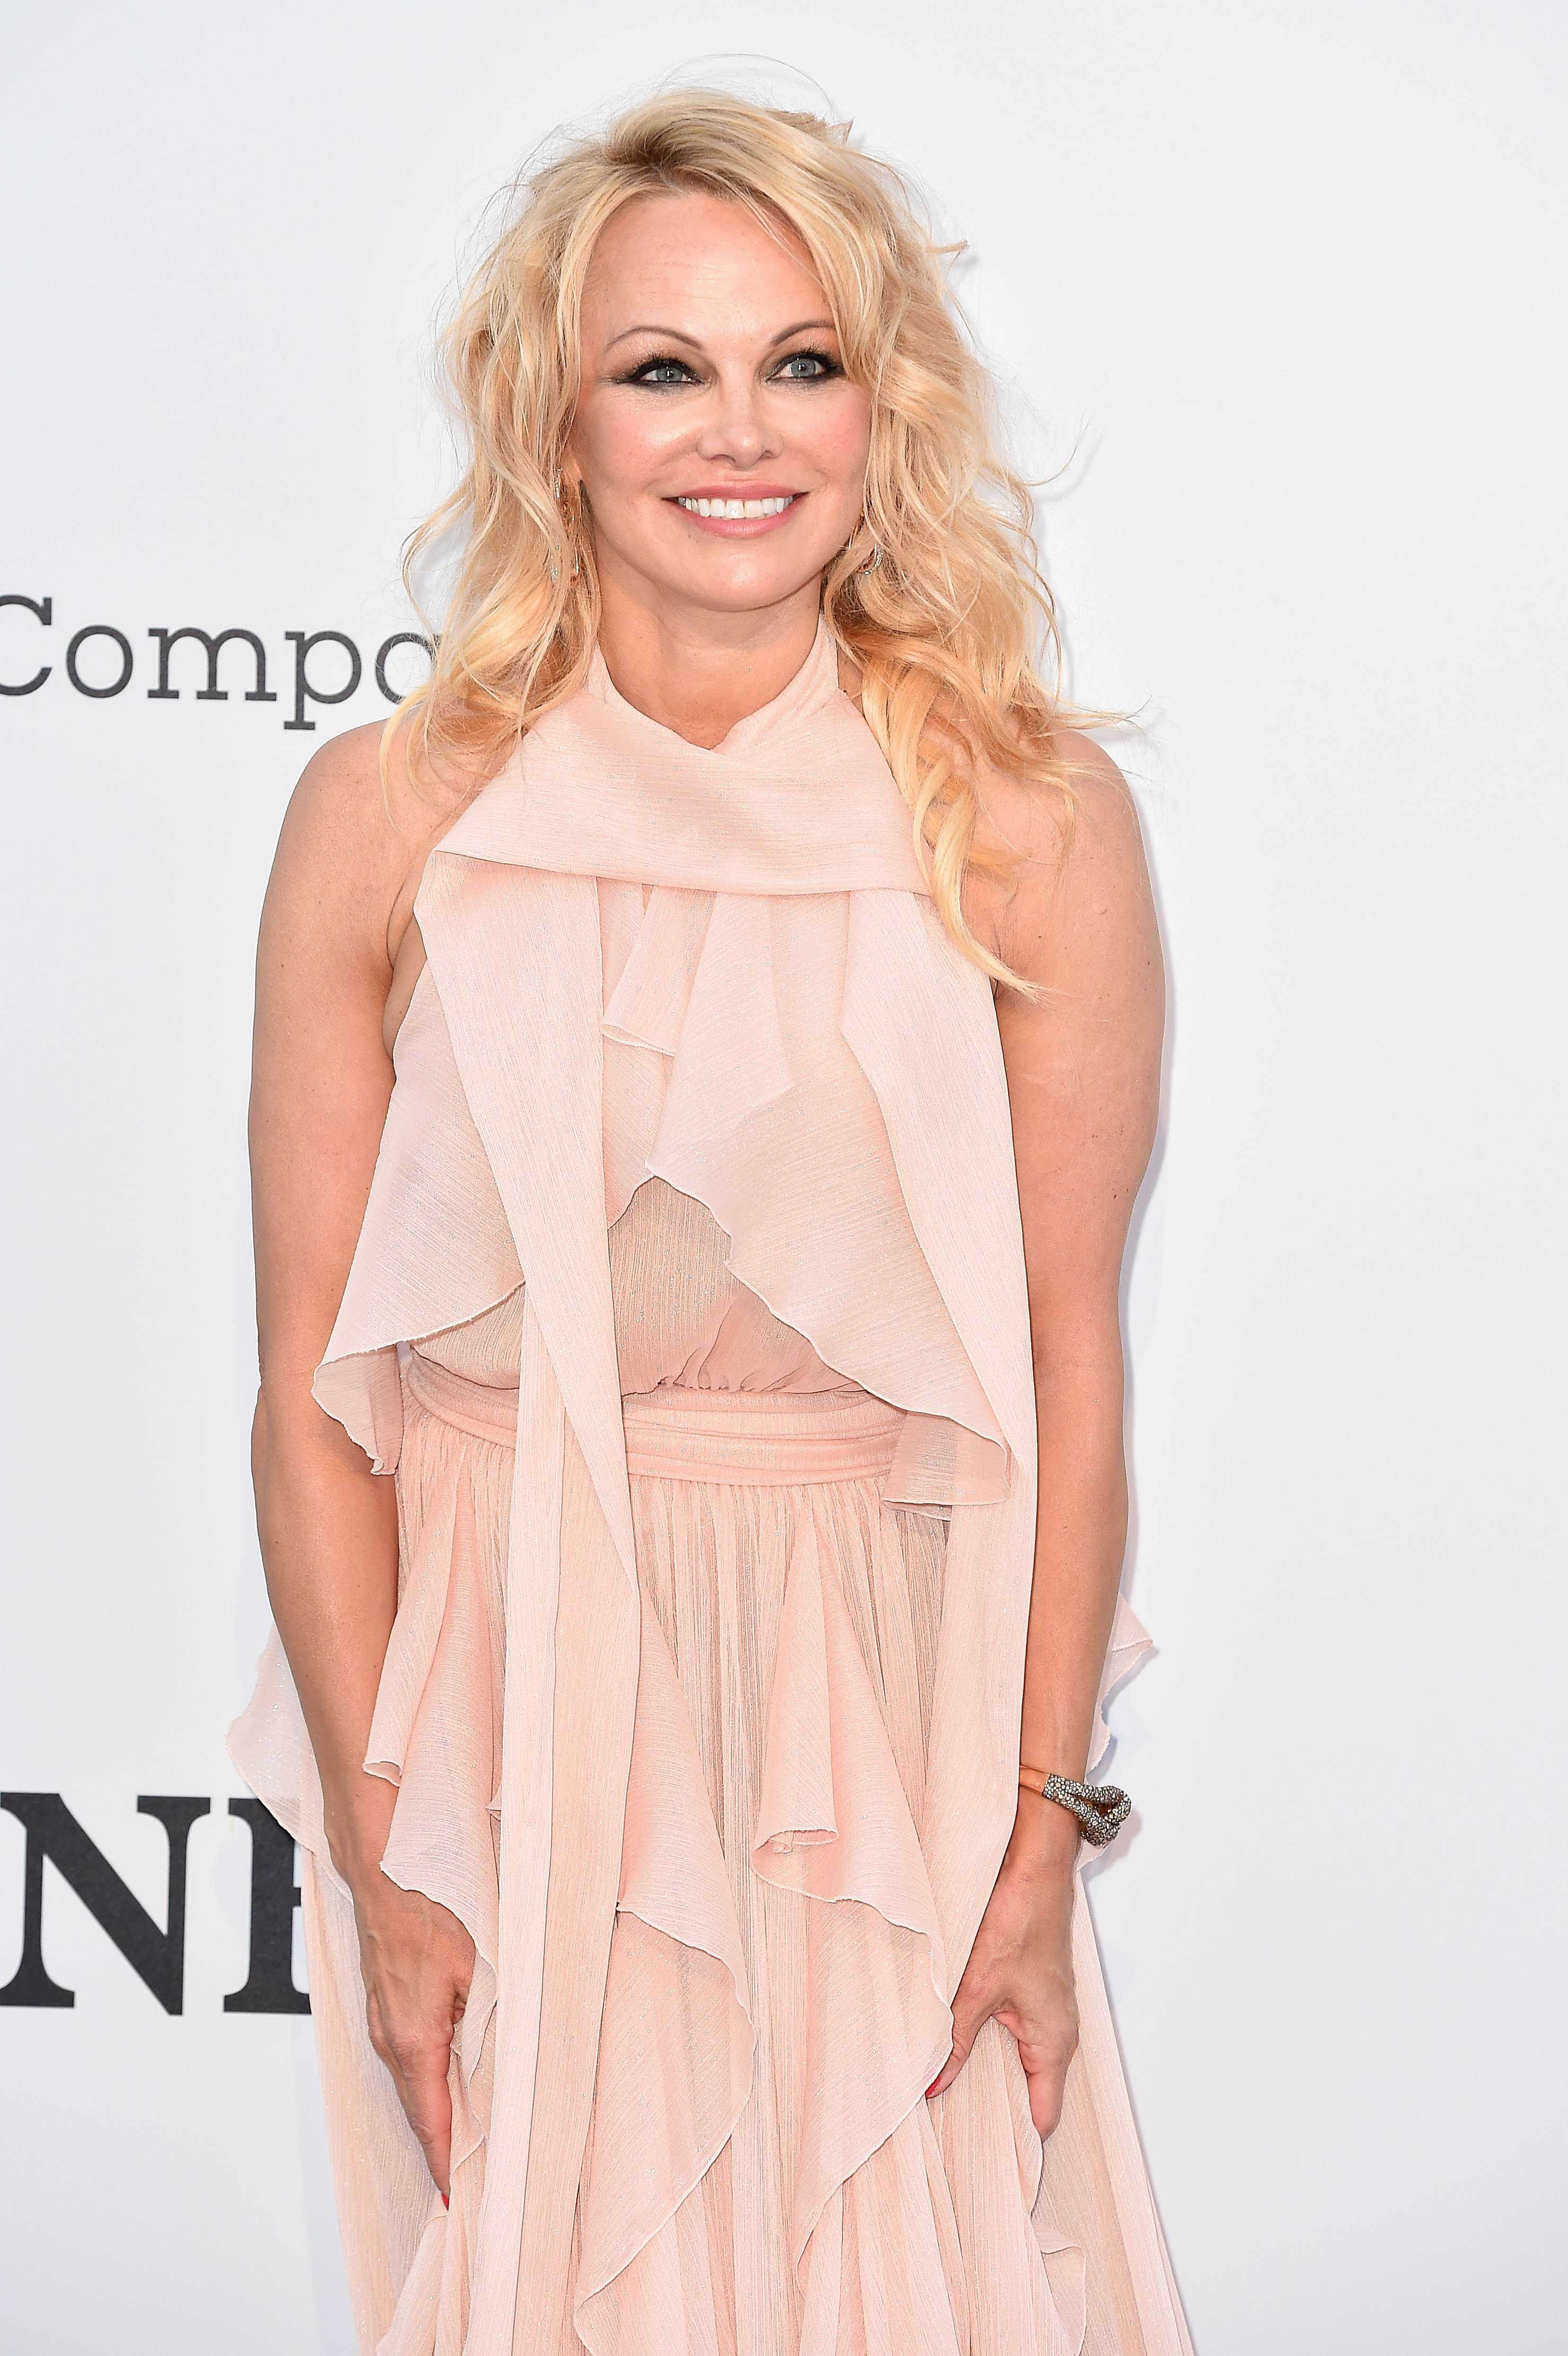 Pamela Anderson at the amfAR gala   Photo: Getty Images